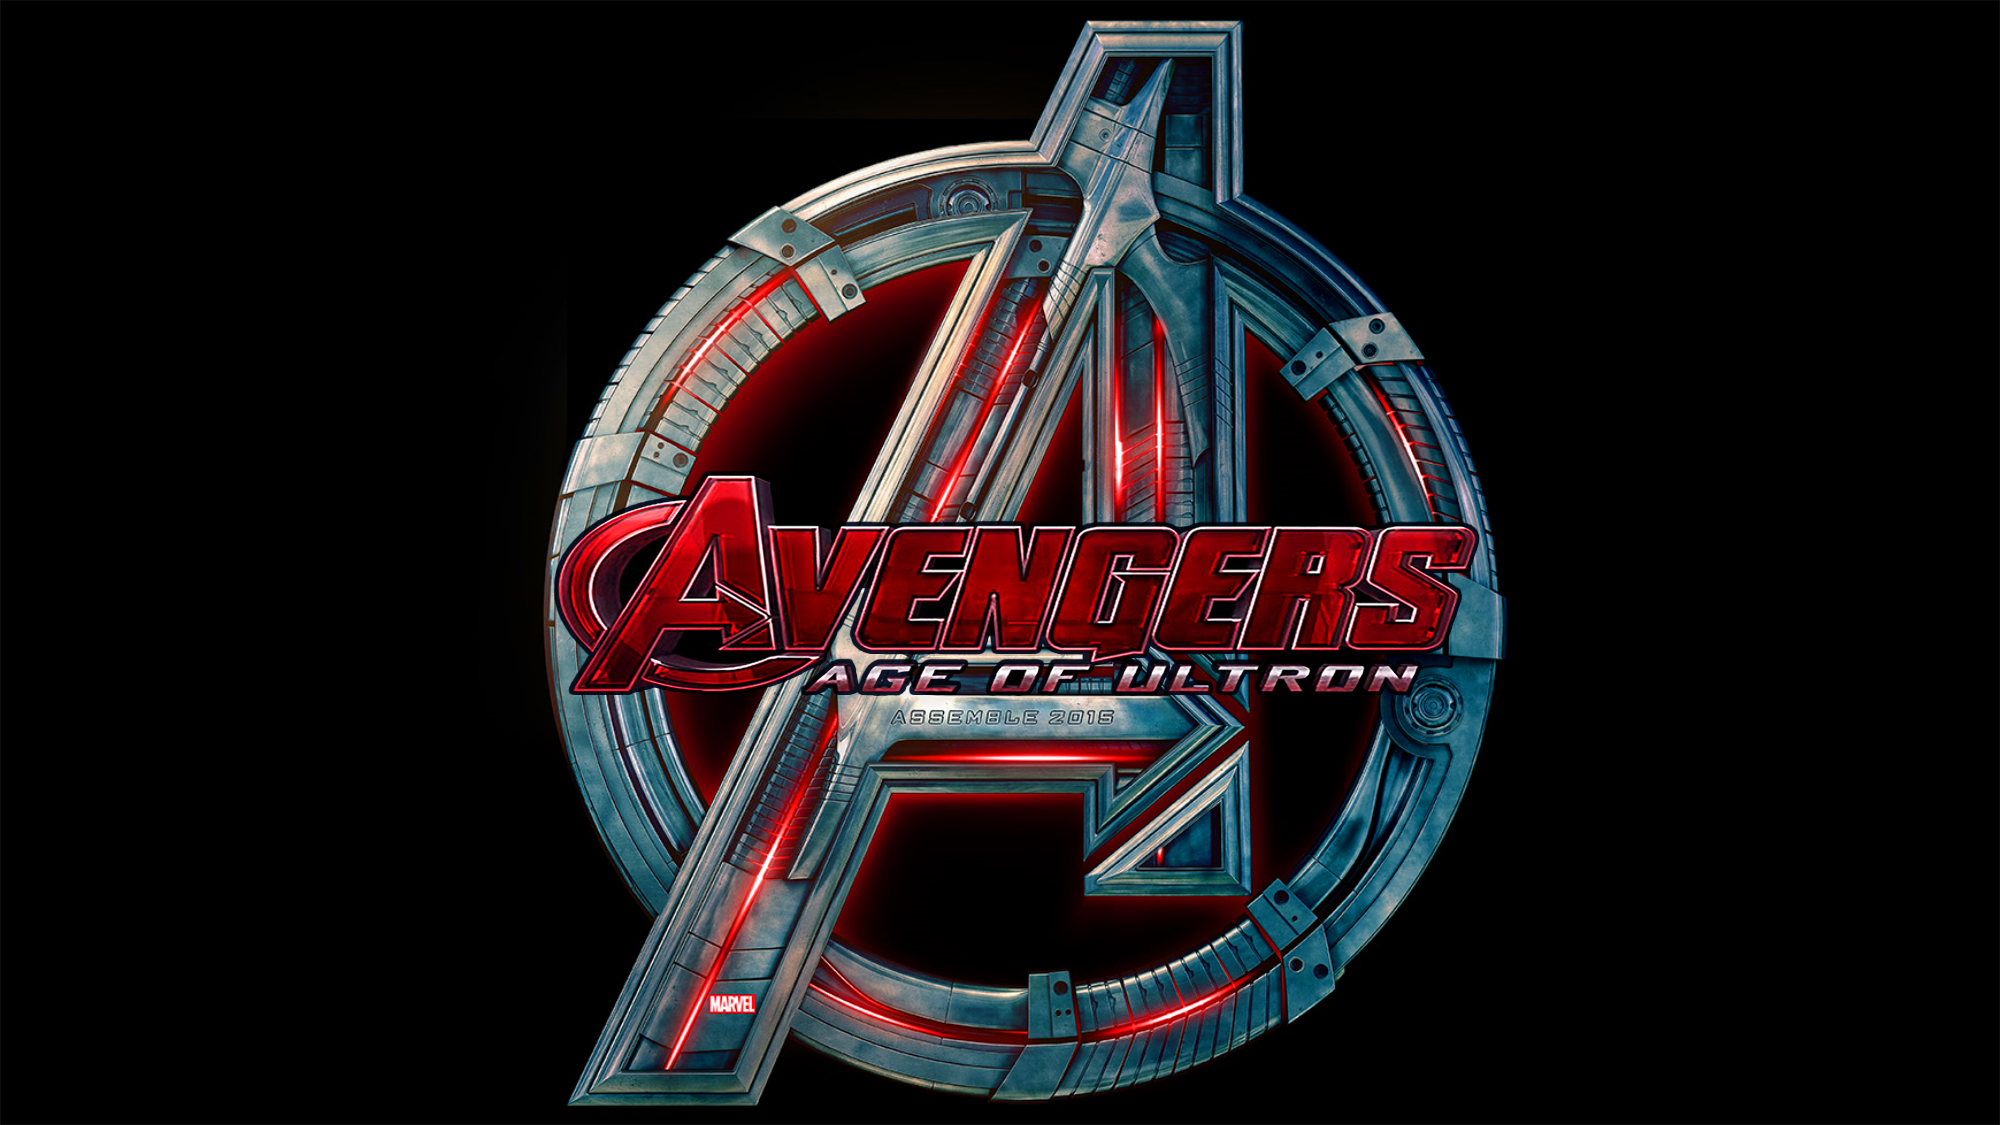 the avengers age of ultron logo 002 by llexandro on